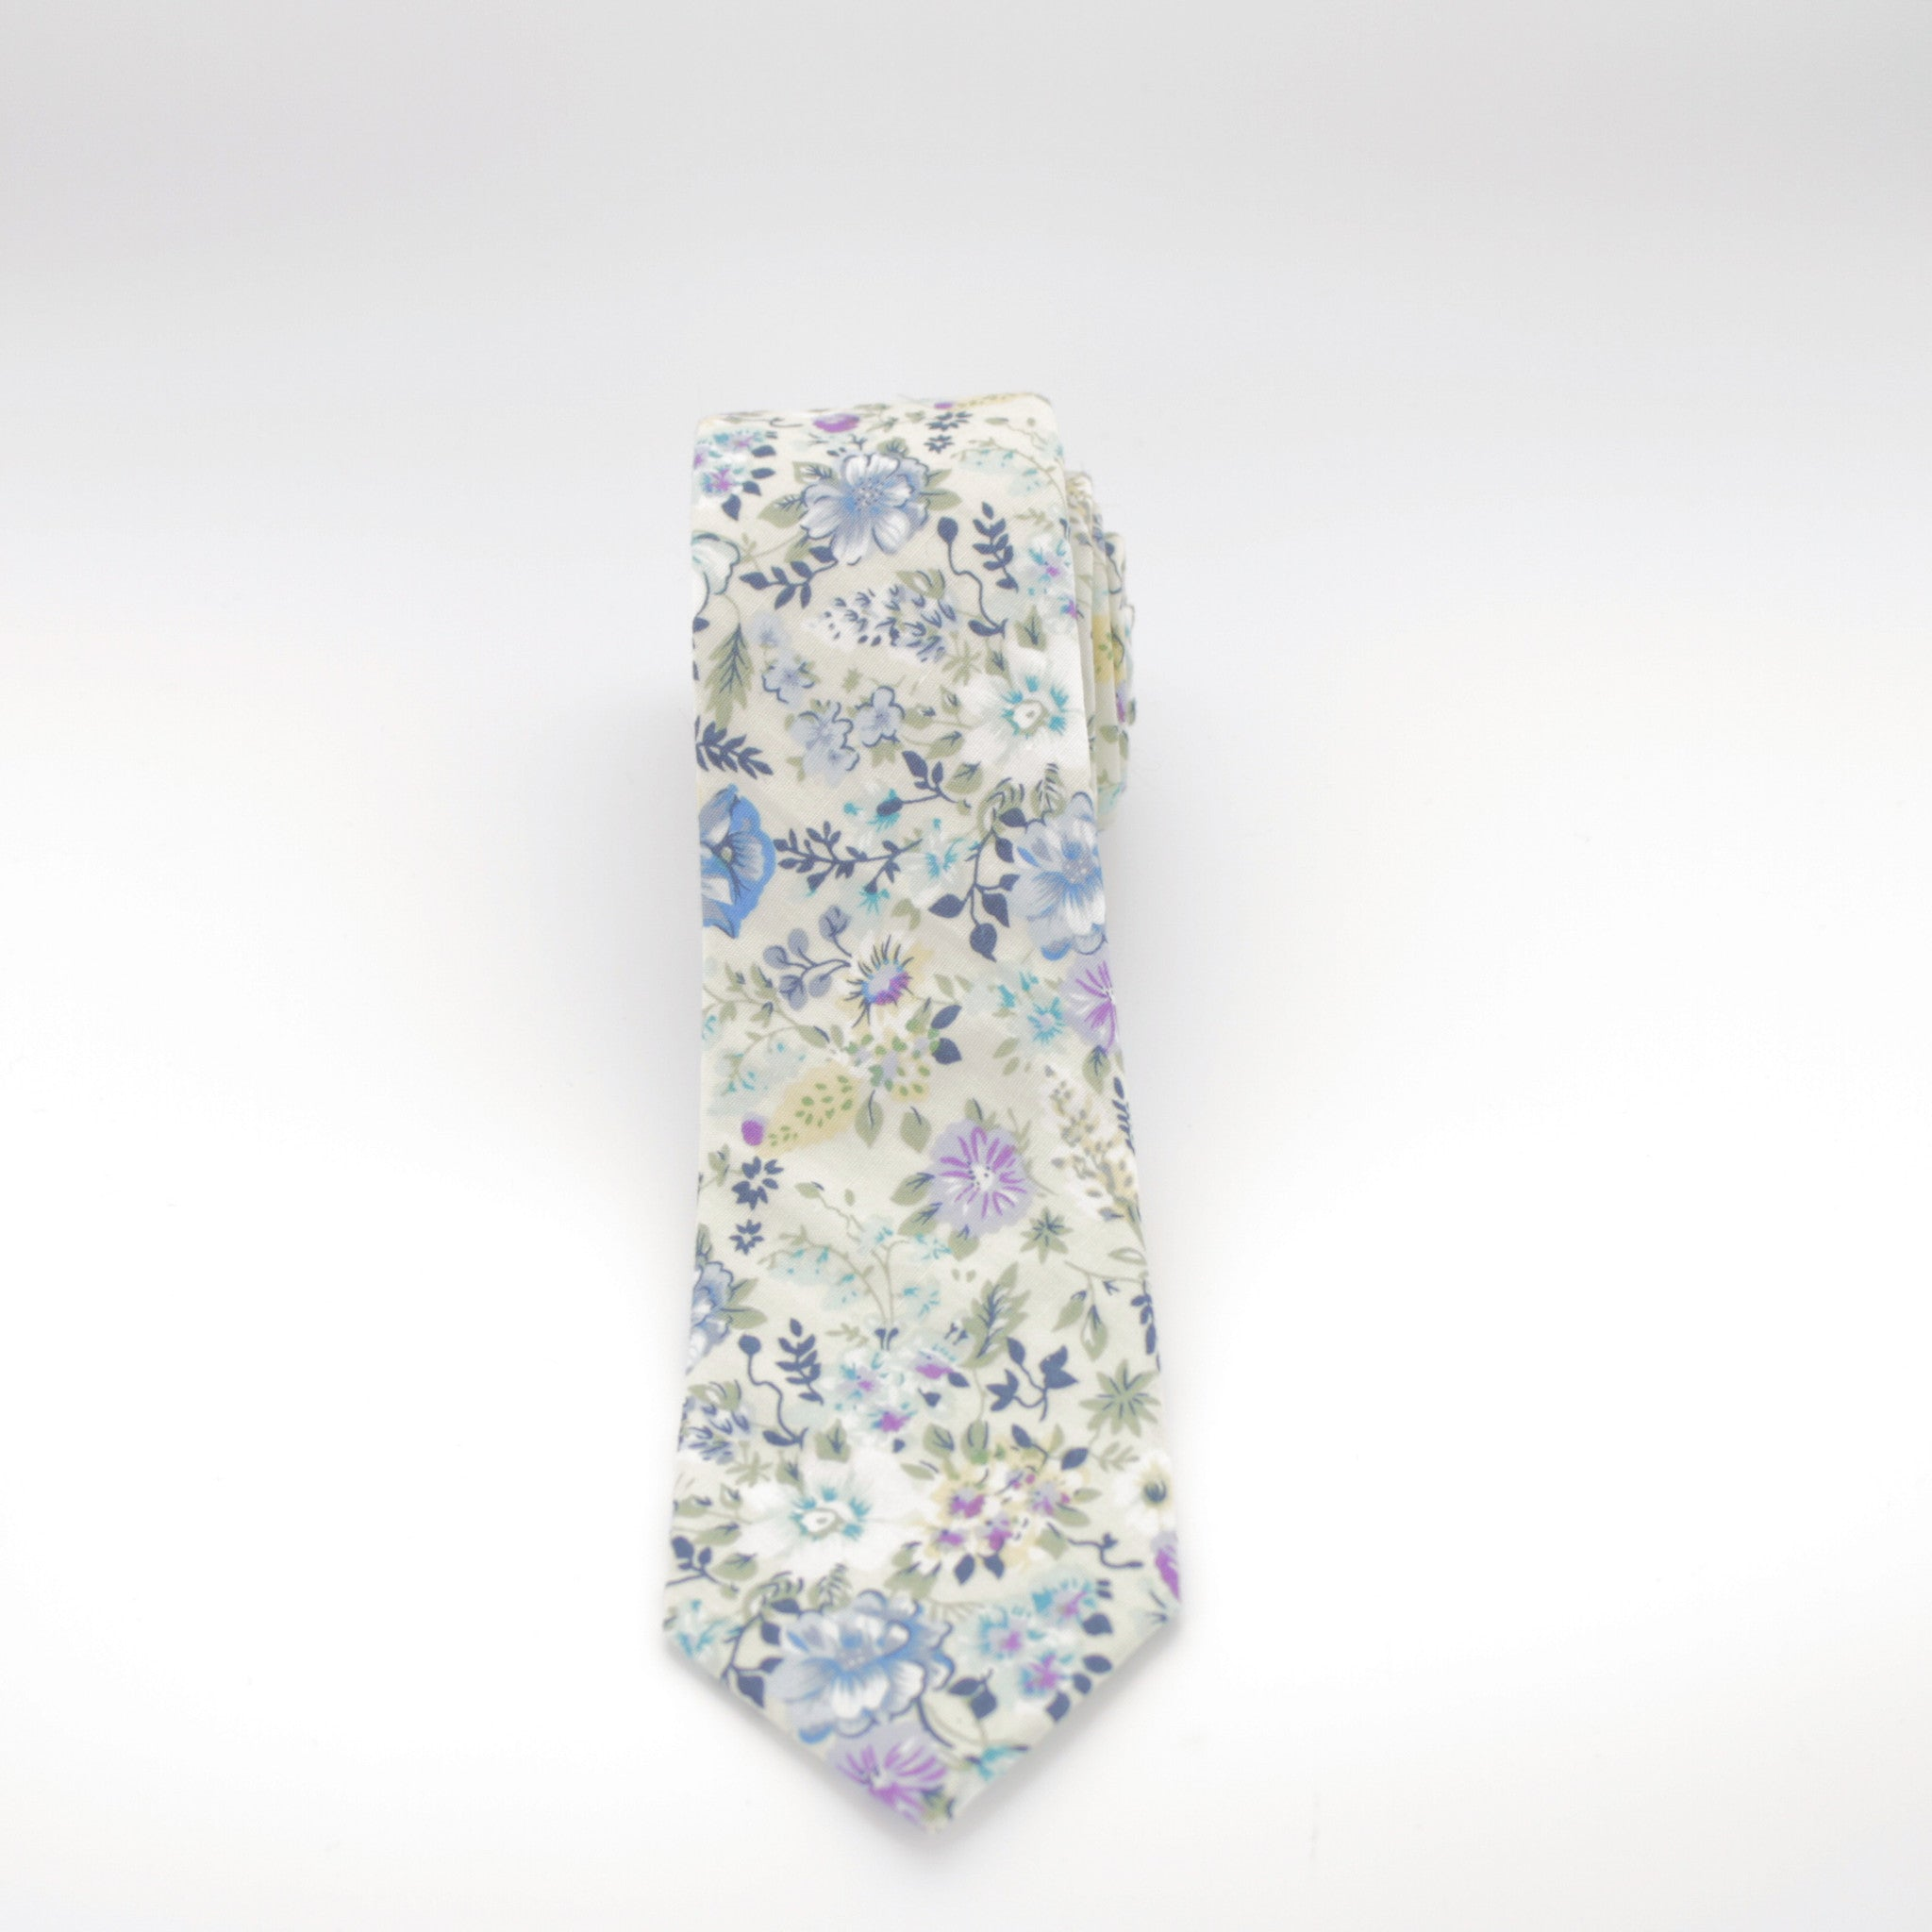 Ivory and Blue Floral Tie